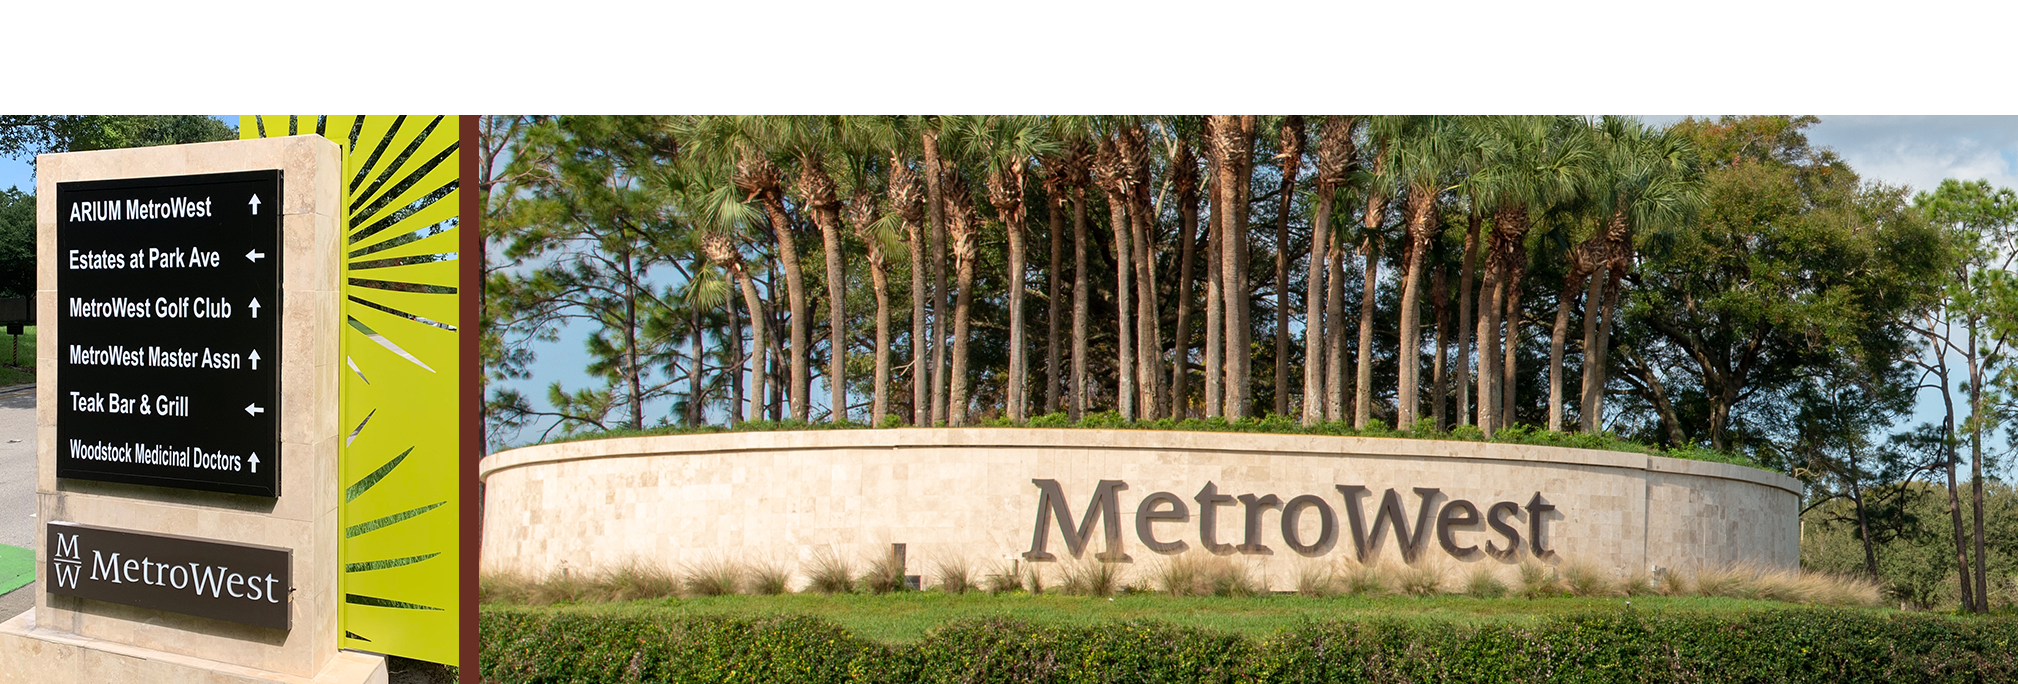 metro west sign at entrance